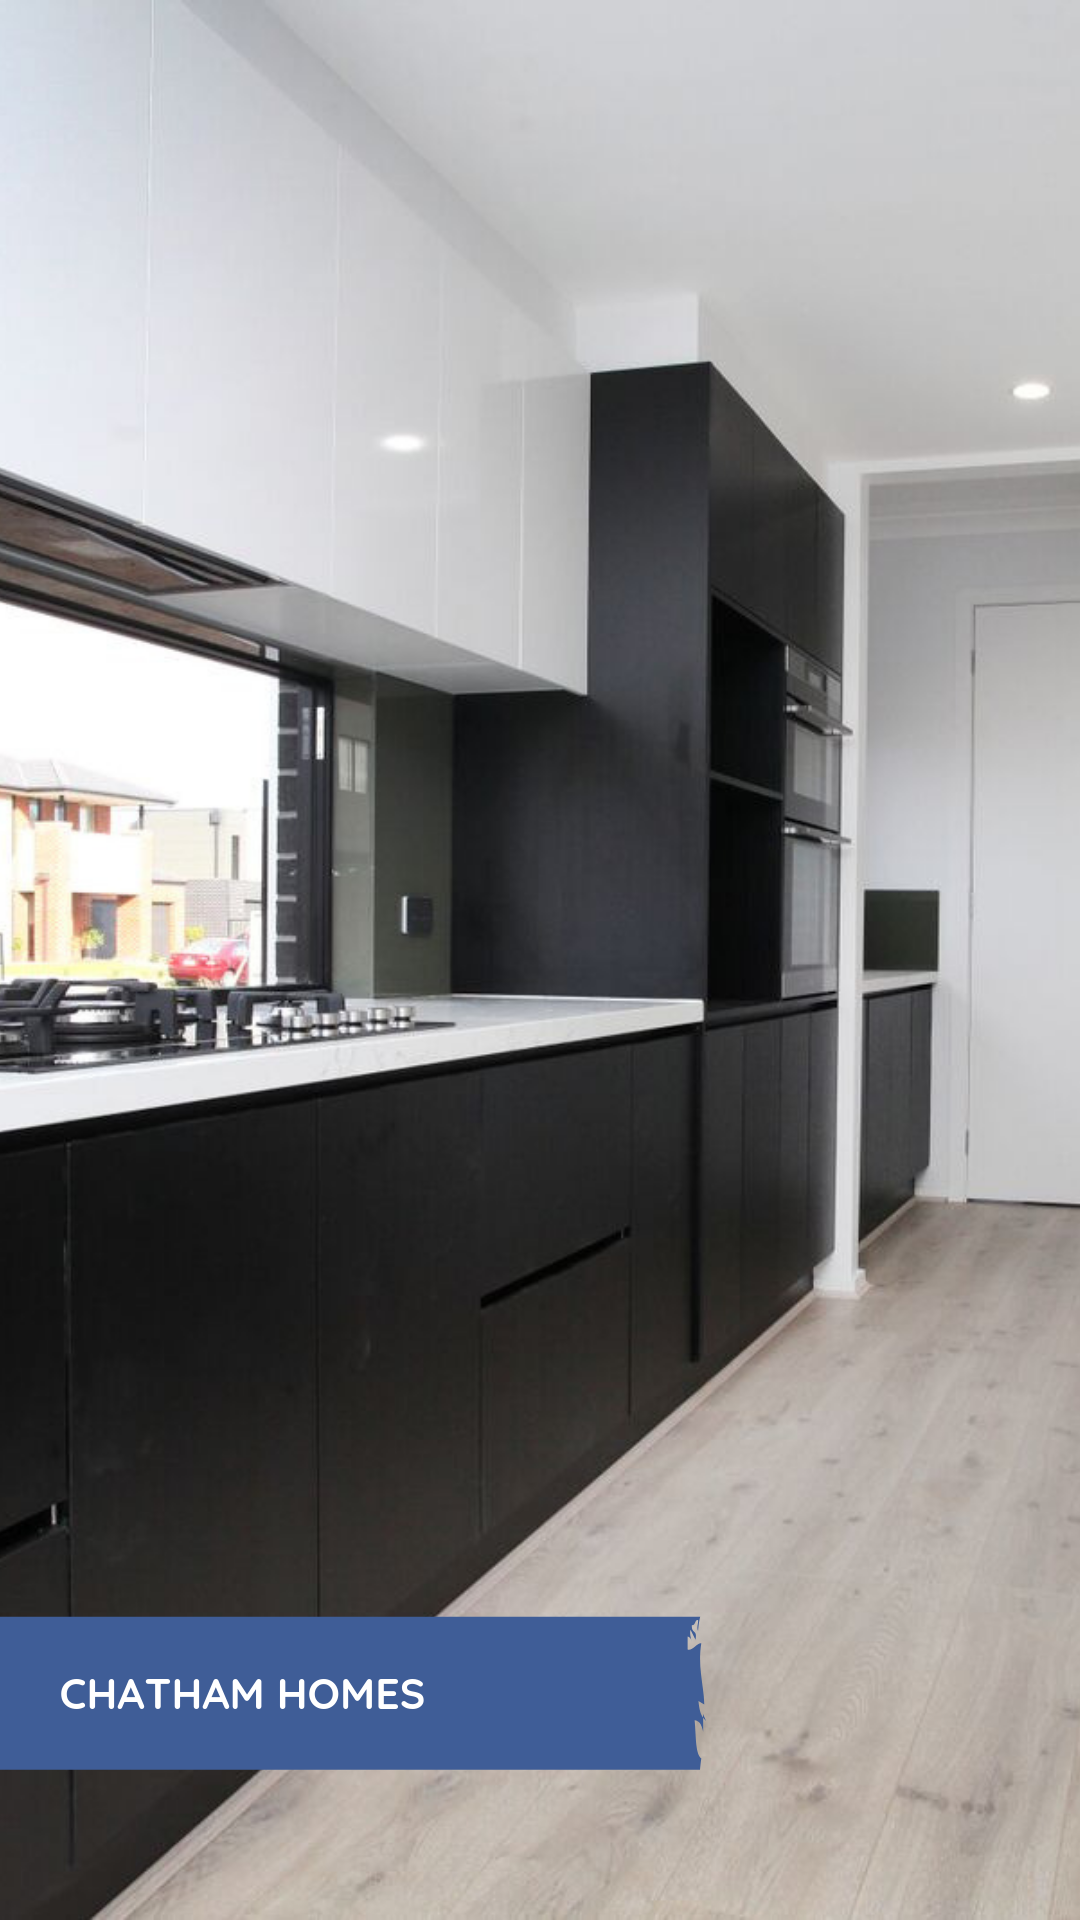 Beautiful monochrome kitchen custom designed by chatham homes experienced custom builder from melbourne australia more designs plans prices for new